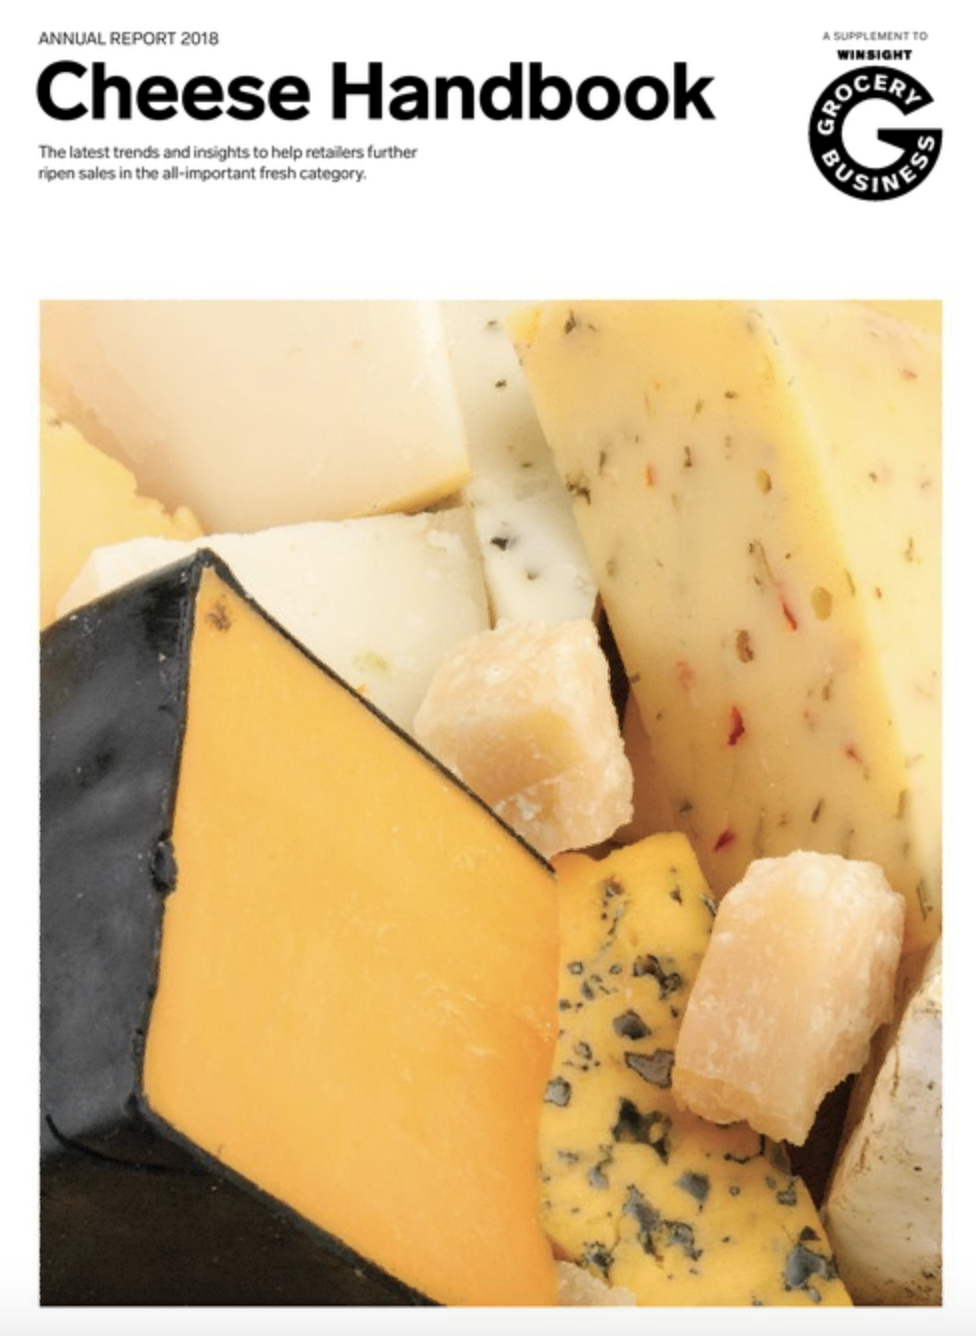 Winsight Grocery Business Magazine Cheese Handbook 2018 Issue